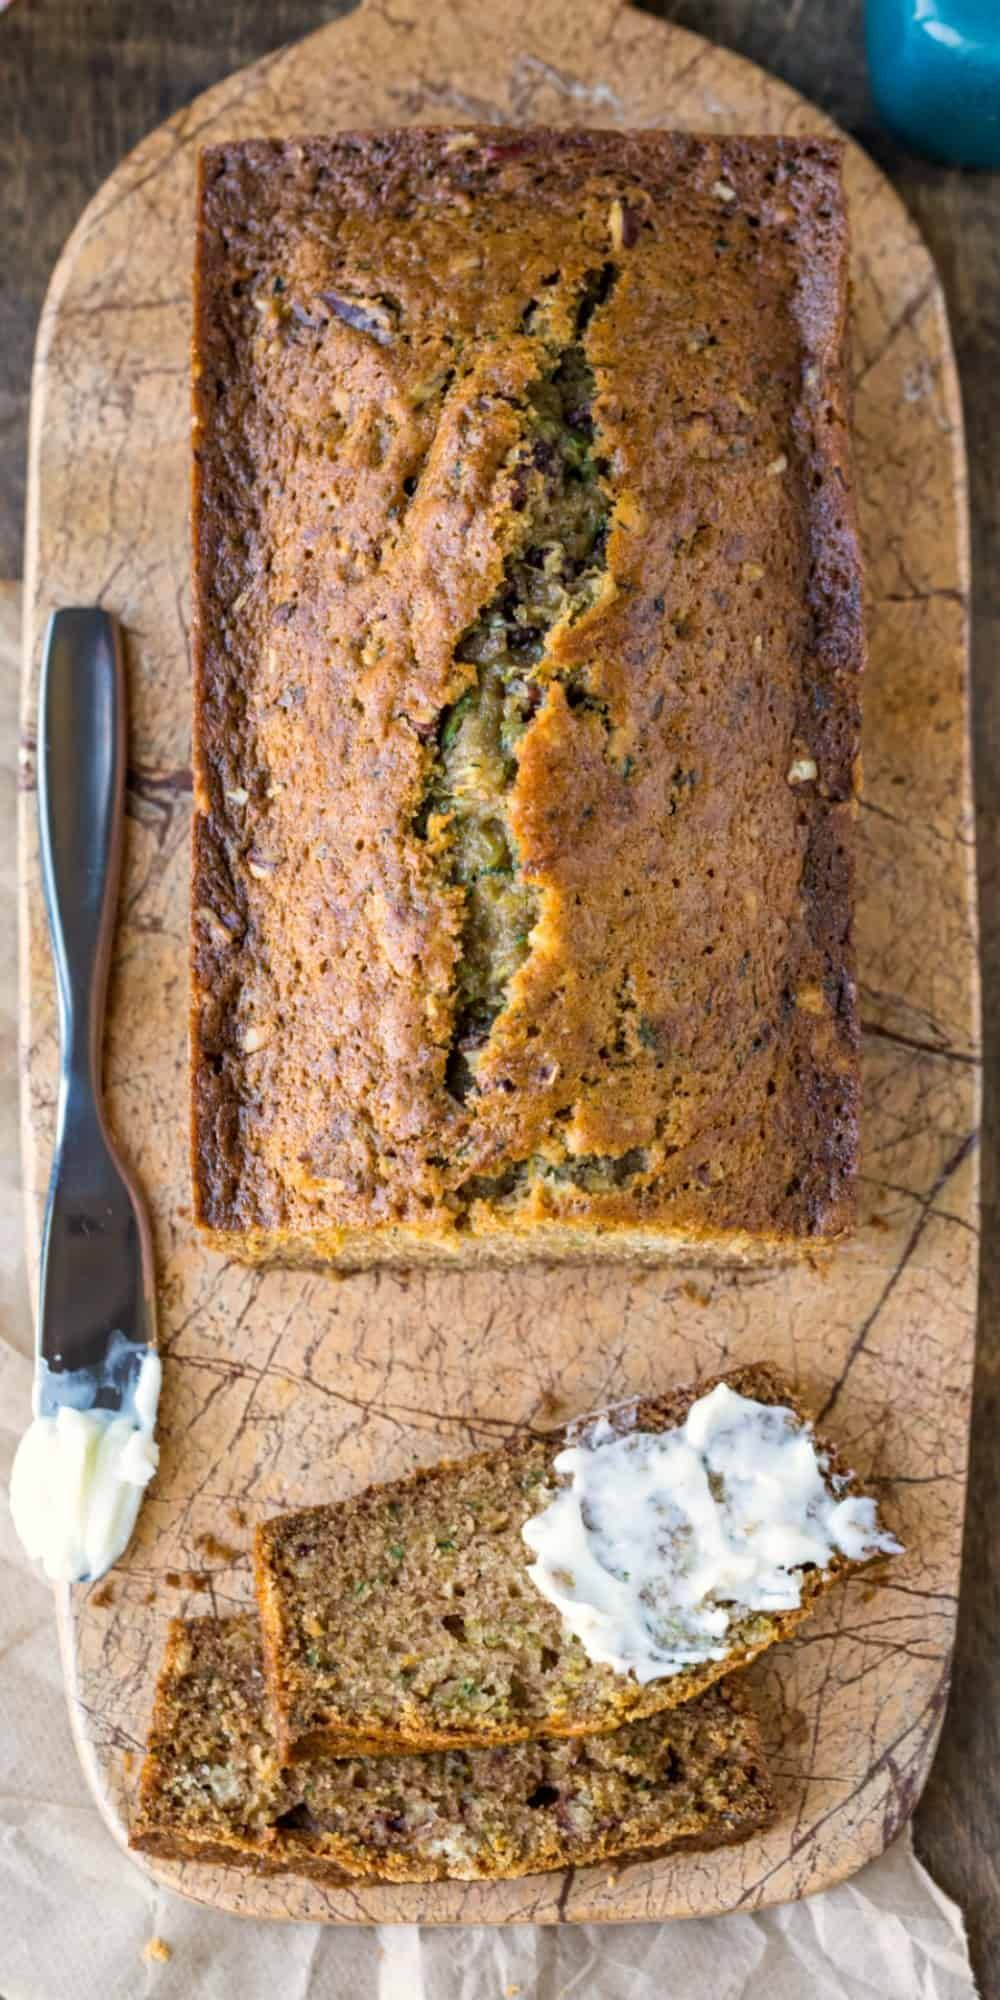 Best easy zucchini bread recipe Makes two loaves of moist perfectly spiced zucchini bread Includes tips on how to make zucchini bread